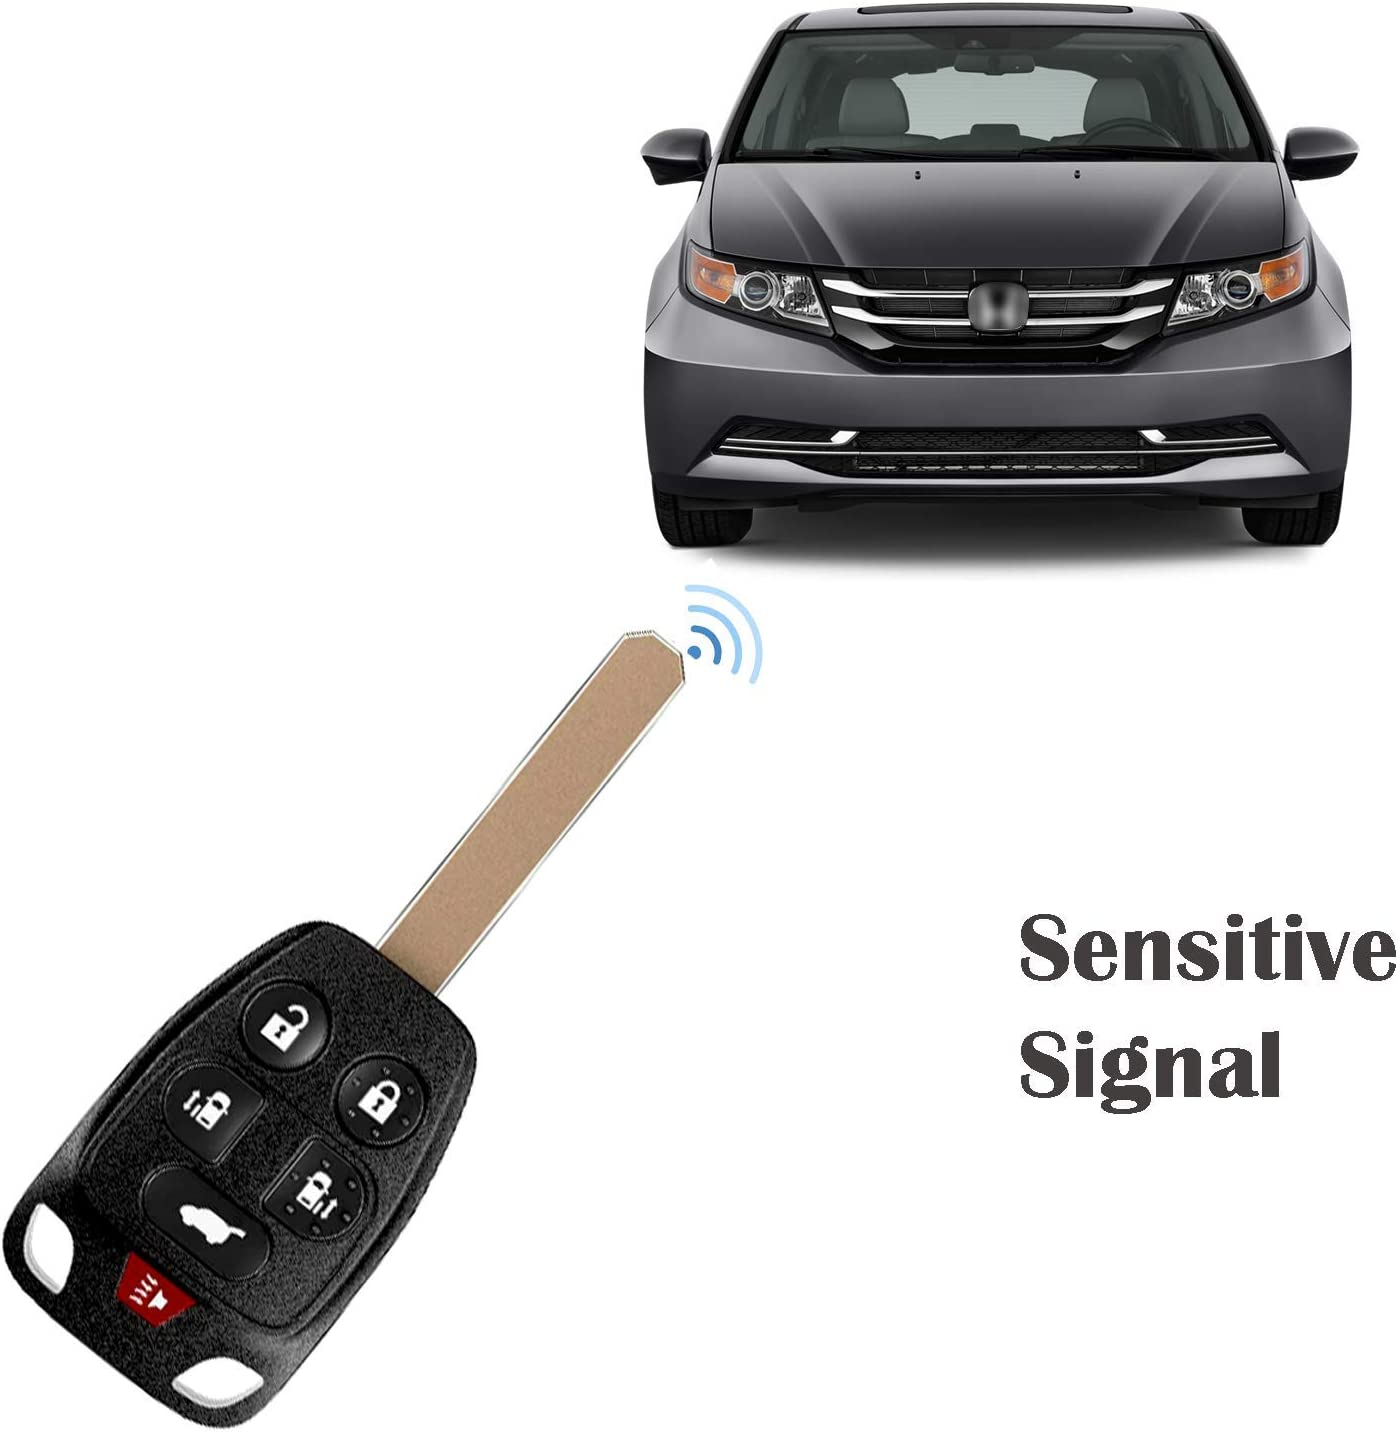 FCC ID: N5F-A04TAA RDBS 6-Buttons Replacement Car Key Fob Entry Remote Fit for Honda Odyssey 2011 2012 2013